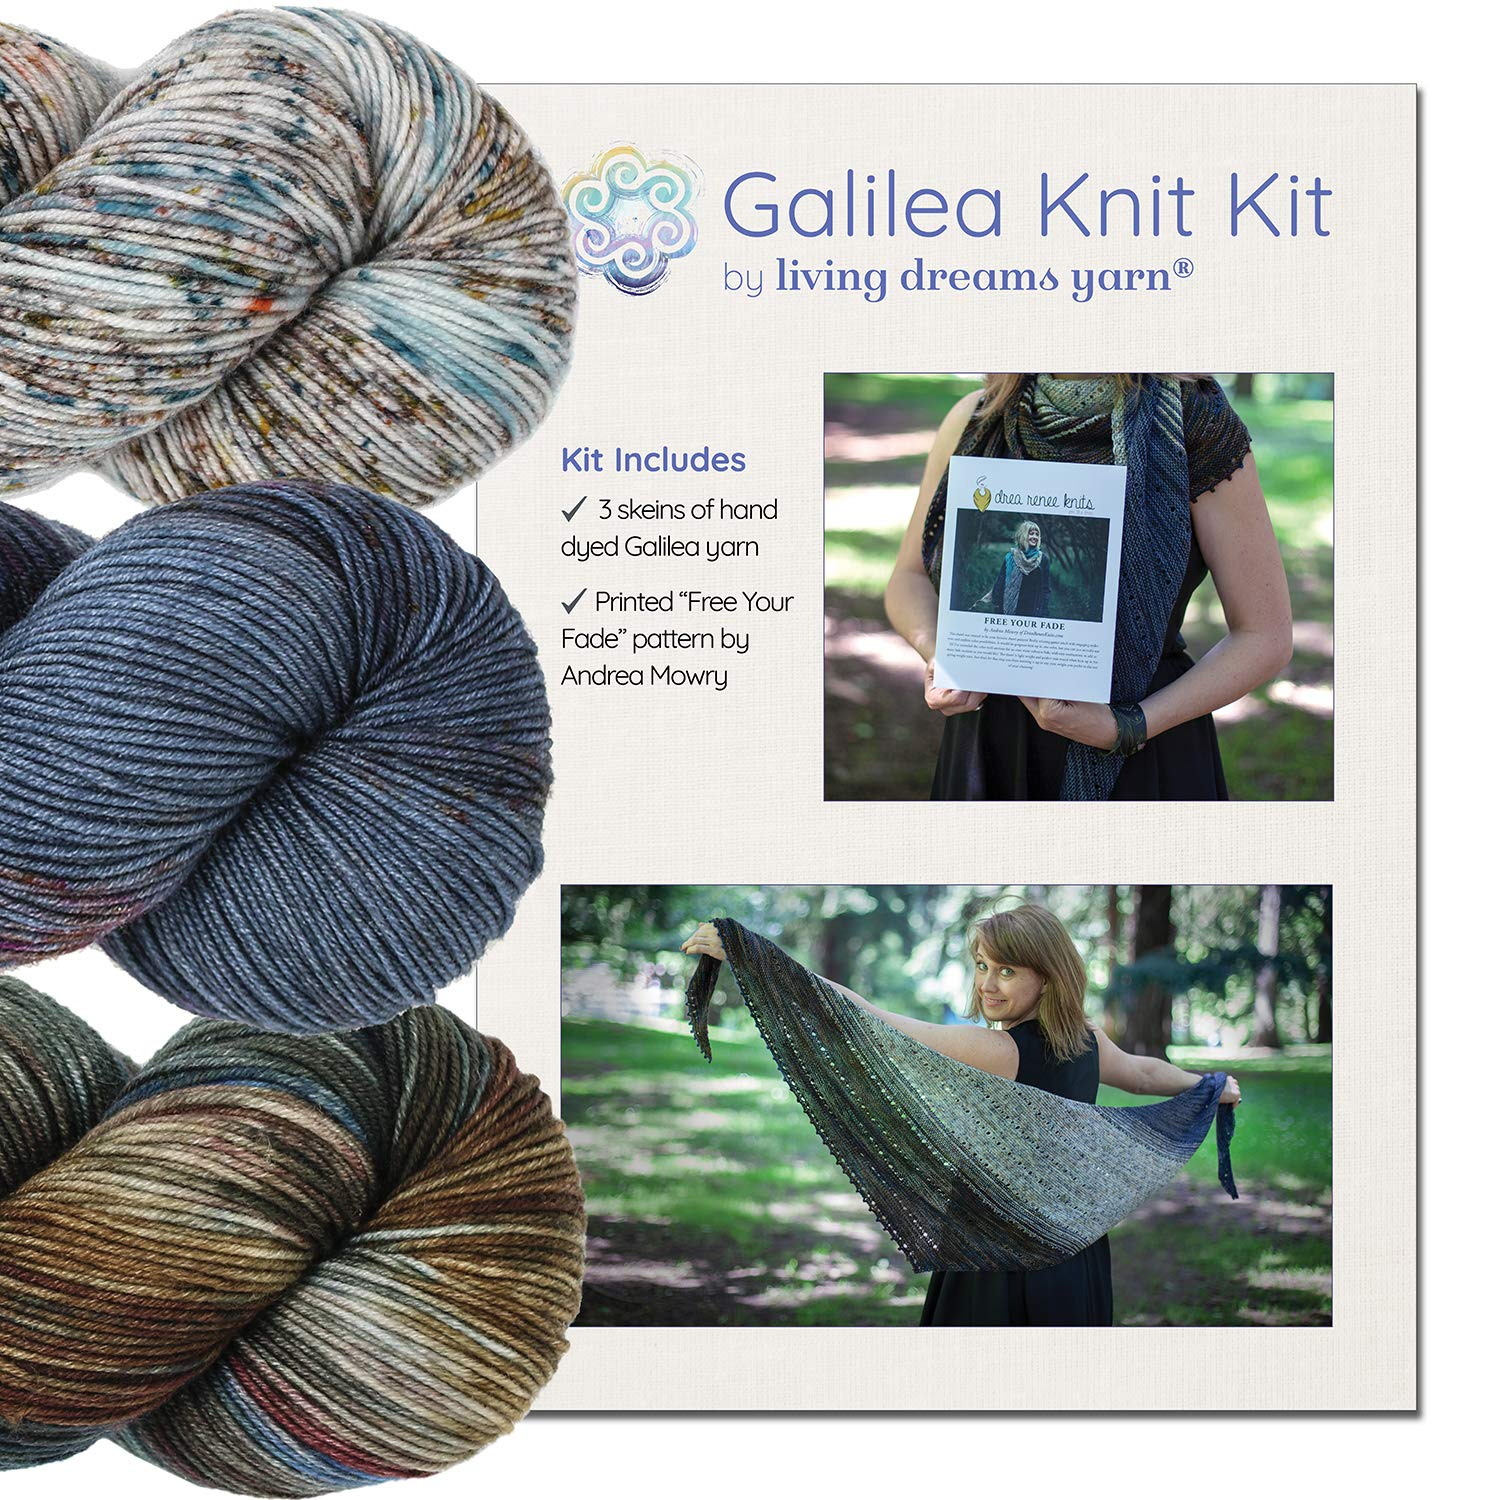 GALILEA SHAWL KNIT KIT Includes Three Complementing Skeins of Hand Dyed SuperWash Merino Yarn + Famous Free Your Fade Knitting Pattern. Shawl Kit: Andromeda